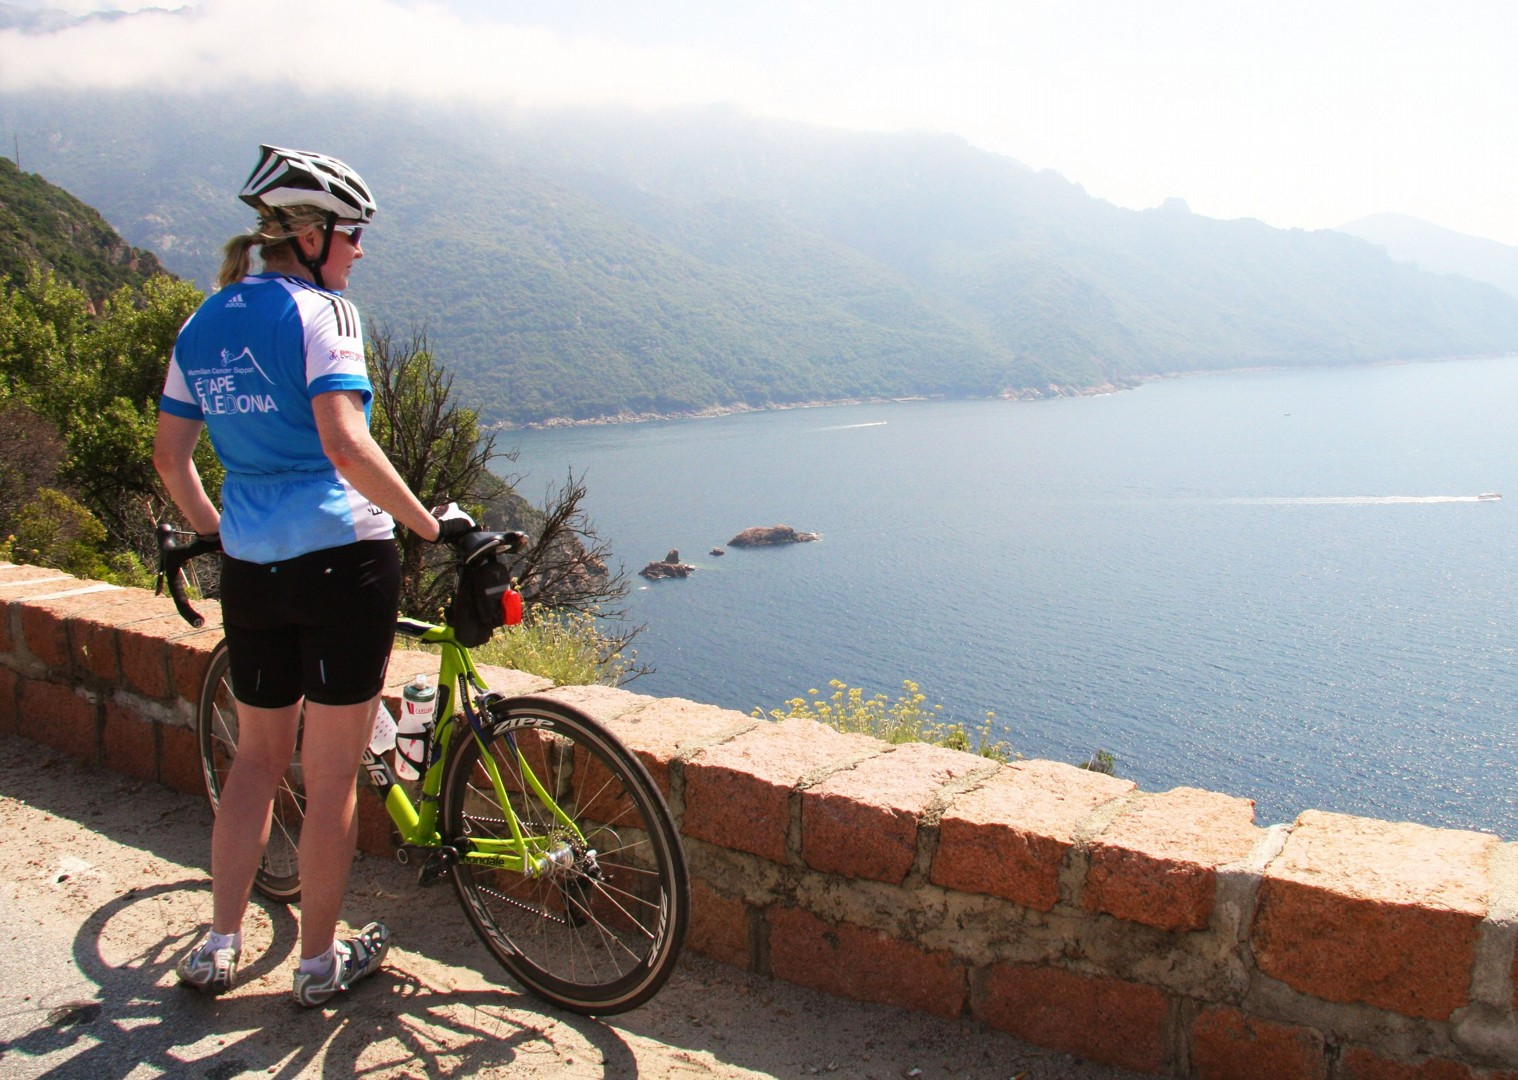 cycling-holiday-coasts-in-corsica.jpg - France - Corsica - Southern Secrets - Guided Road Cycling Holiday - Road Cycling